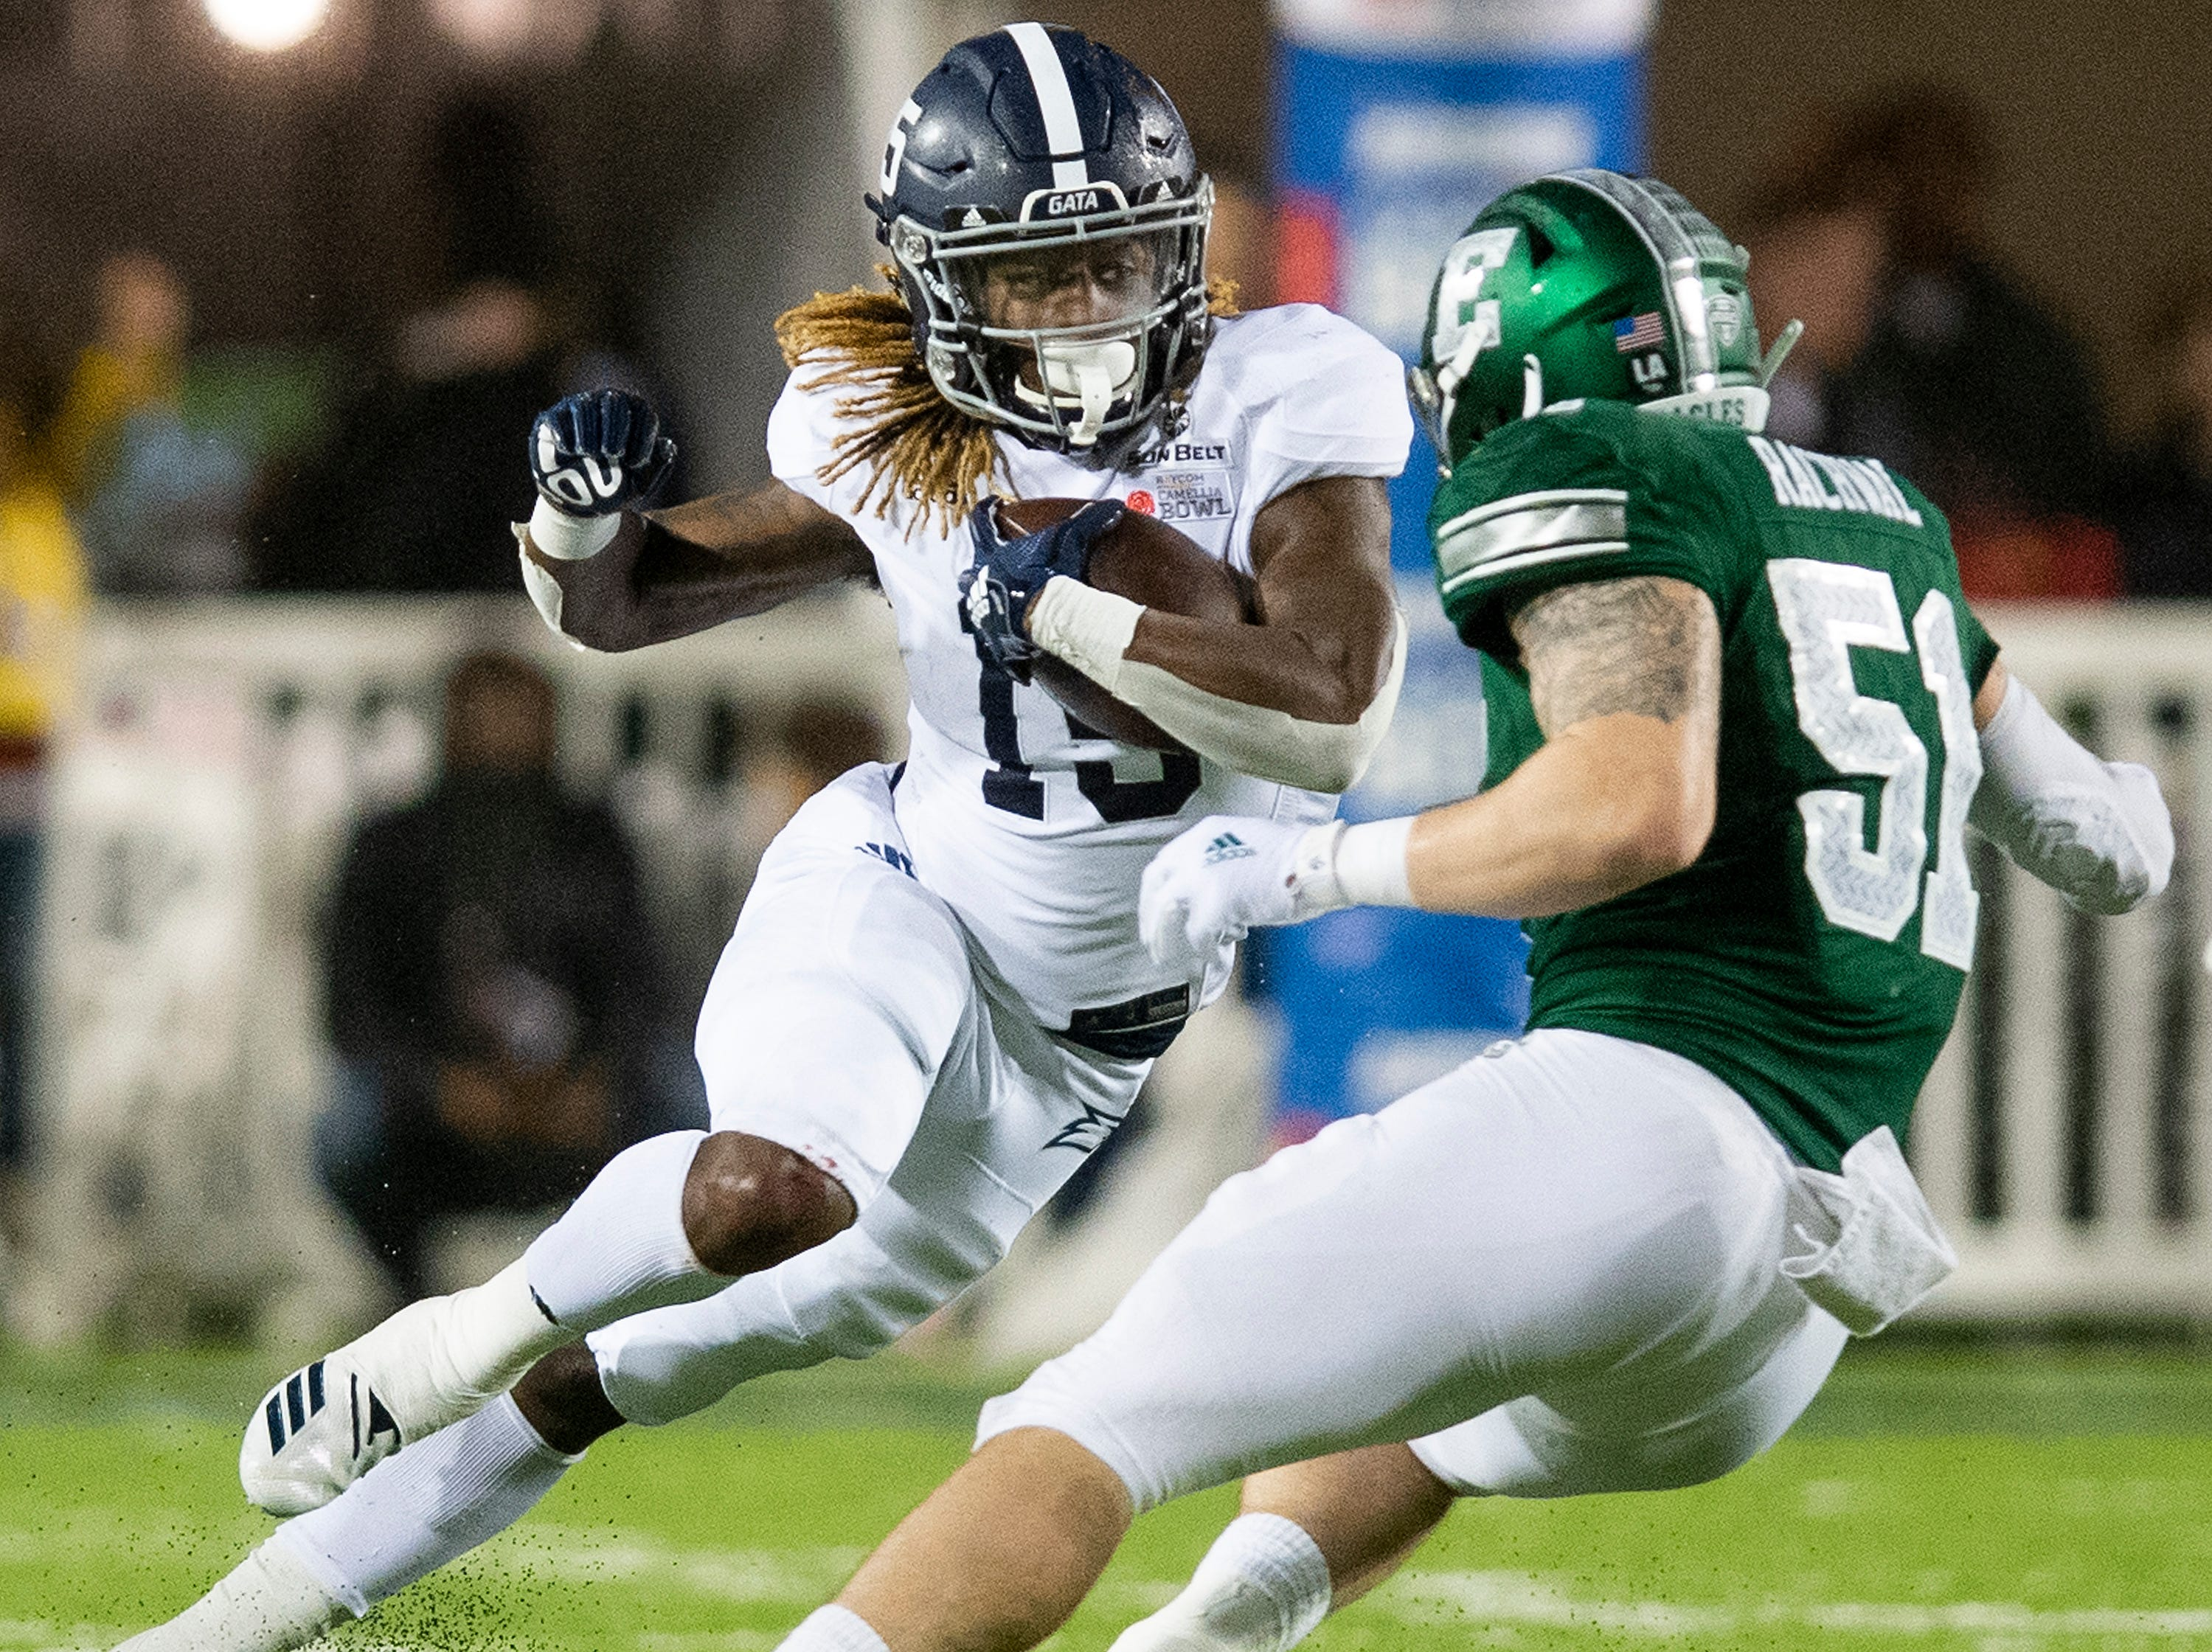 Georgia Southern running back Monteo Garrett (15) carries the ball against Eastern Michigan linebacker Kyle Rachwal (51) during first half action in the Raycom Media  Camellia Bowl held at Cramton Bowl in Montgomery, Ala., on Saturday December 15, 2018.